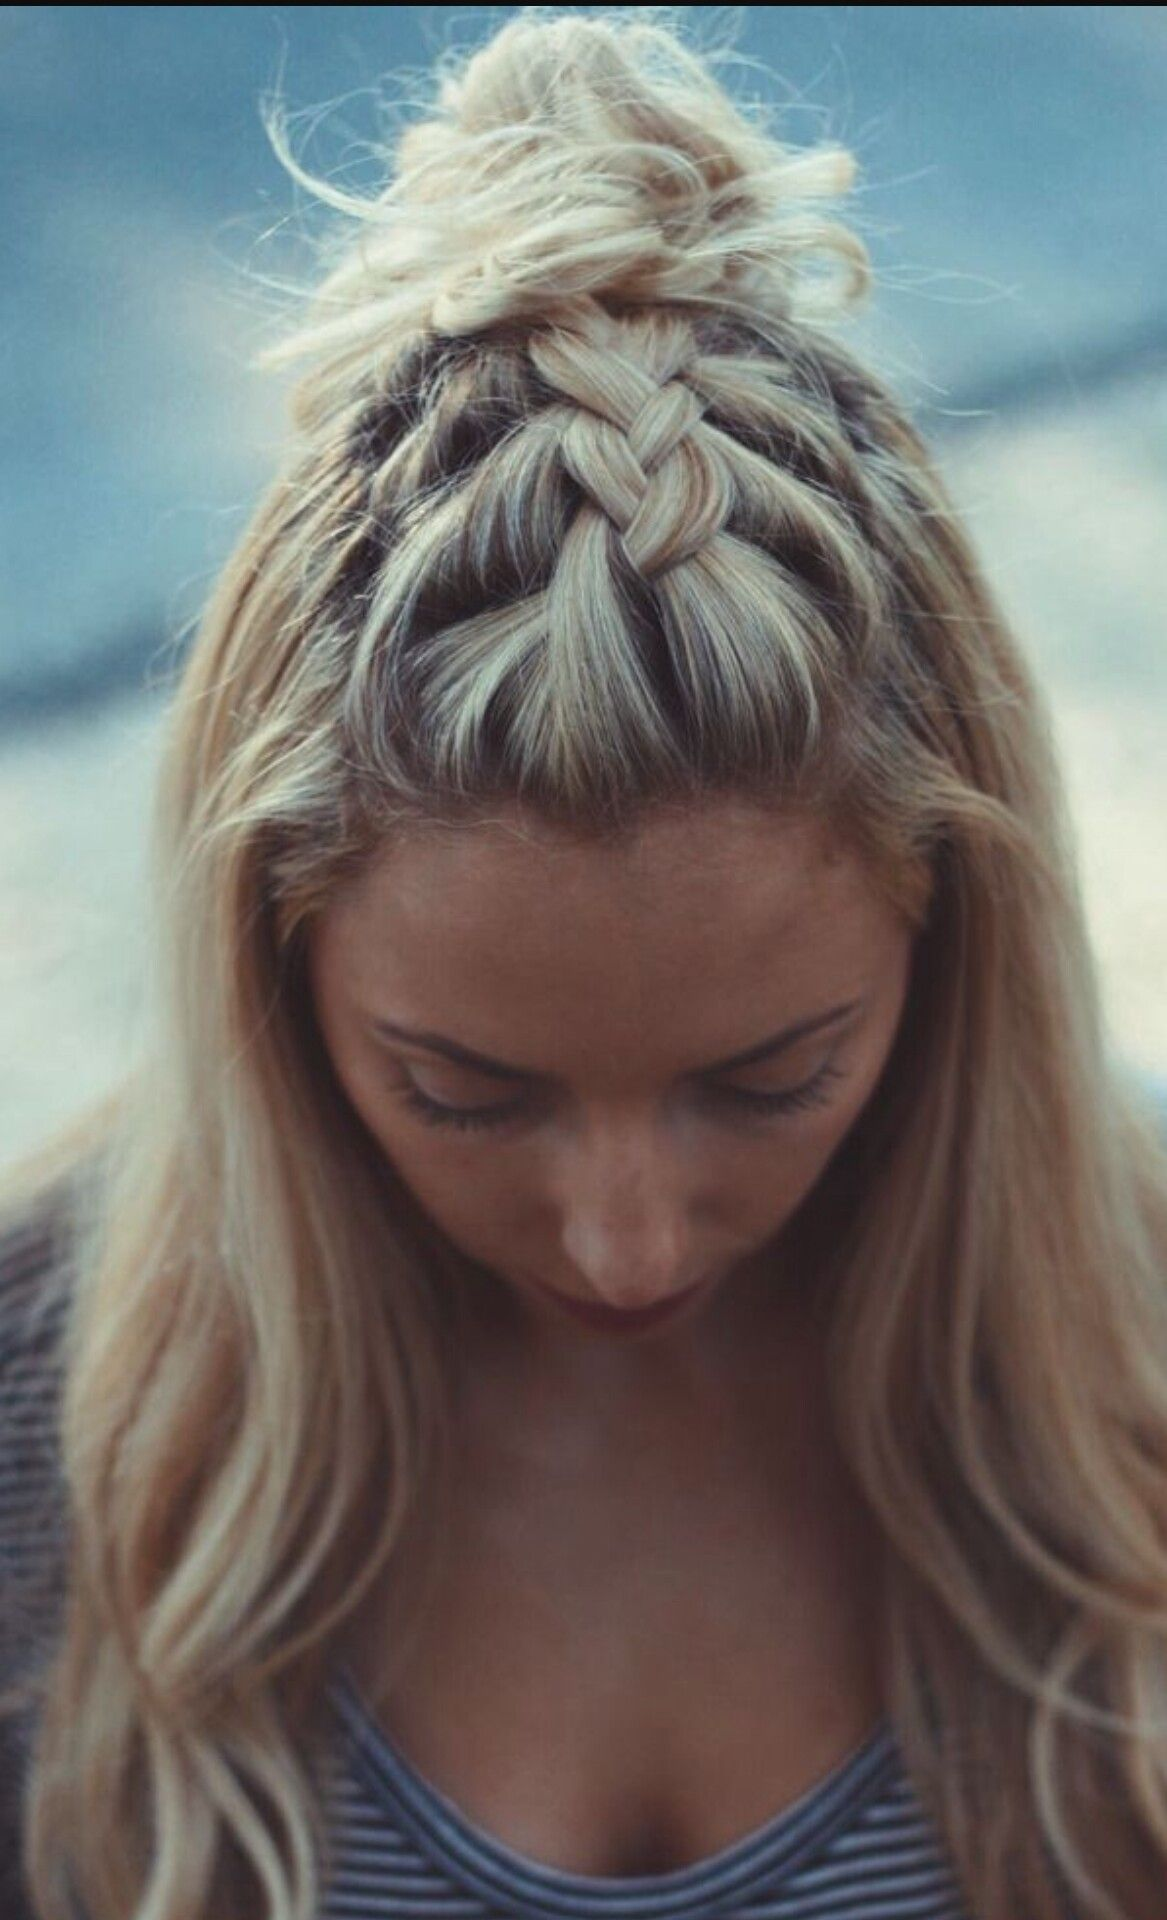 This is just a french braid on top of the head!